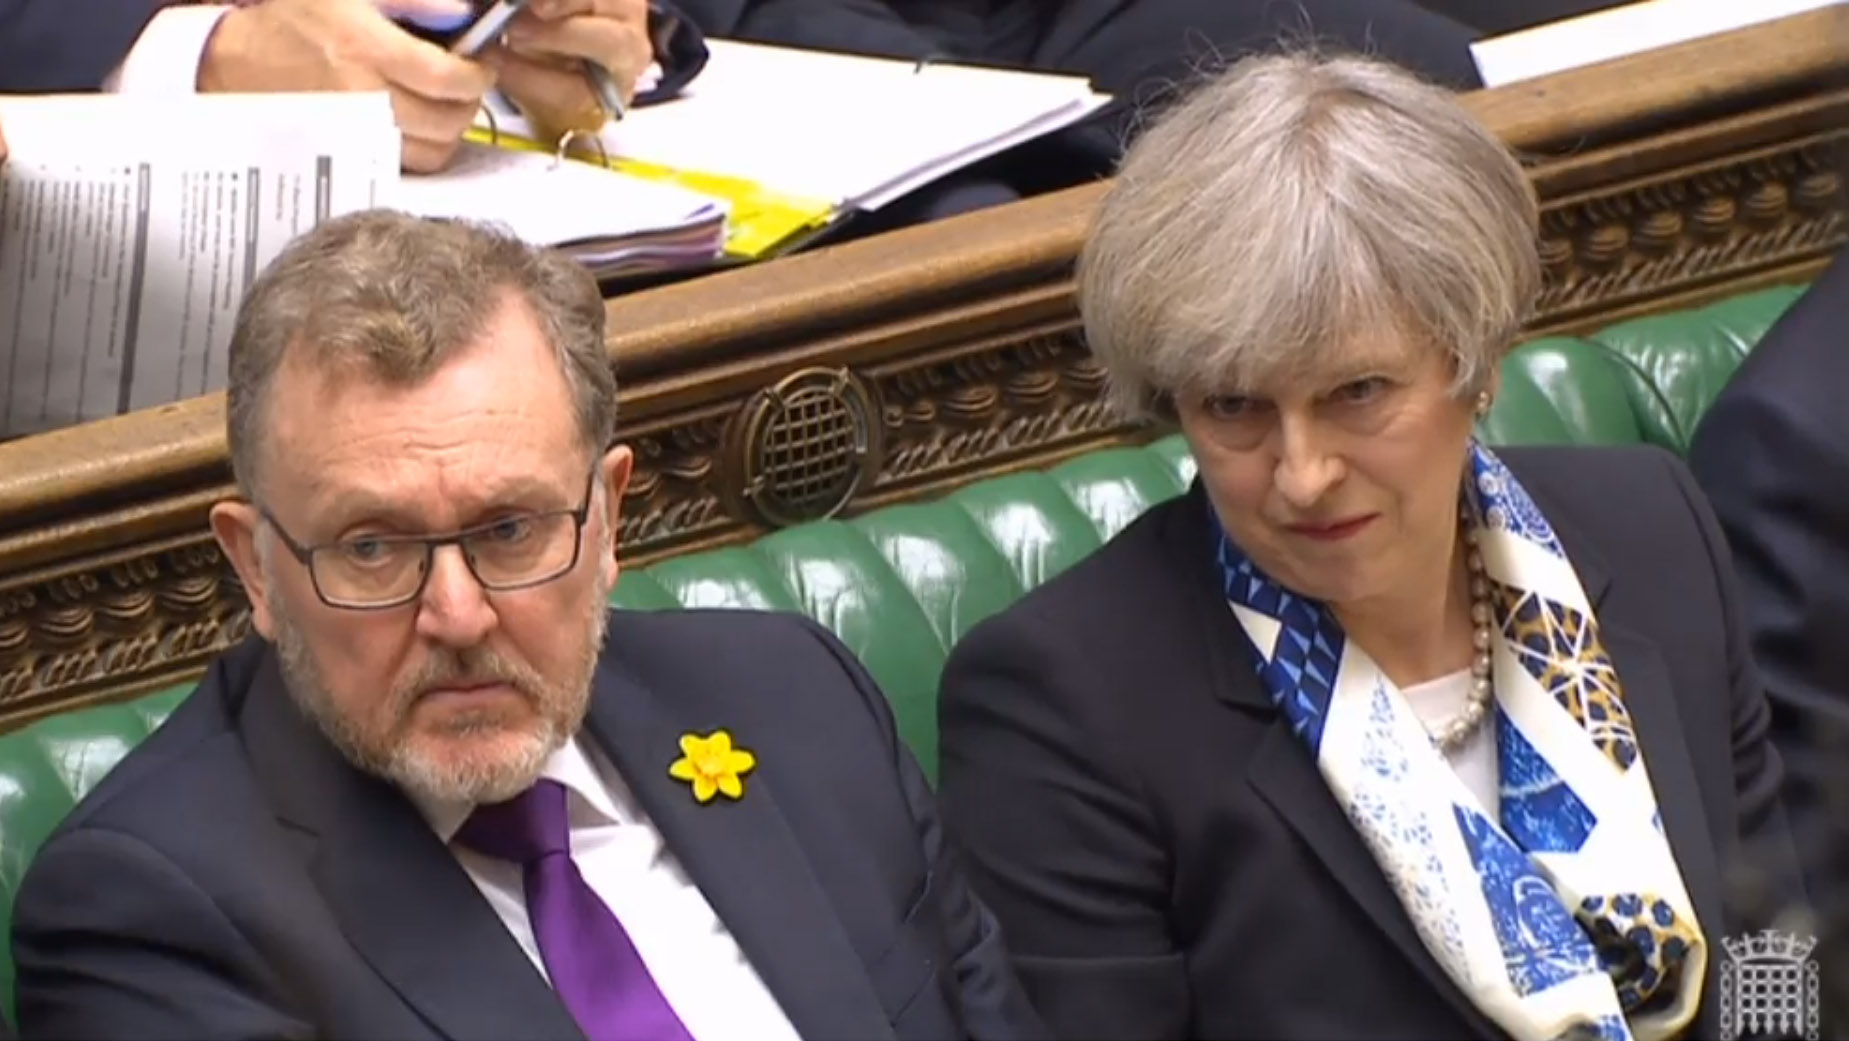 Prime Minister Theresa May and Scottish Secretary David Mundell during Prime Minister's Questions in the House of Commons, London. (PA Wire)